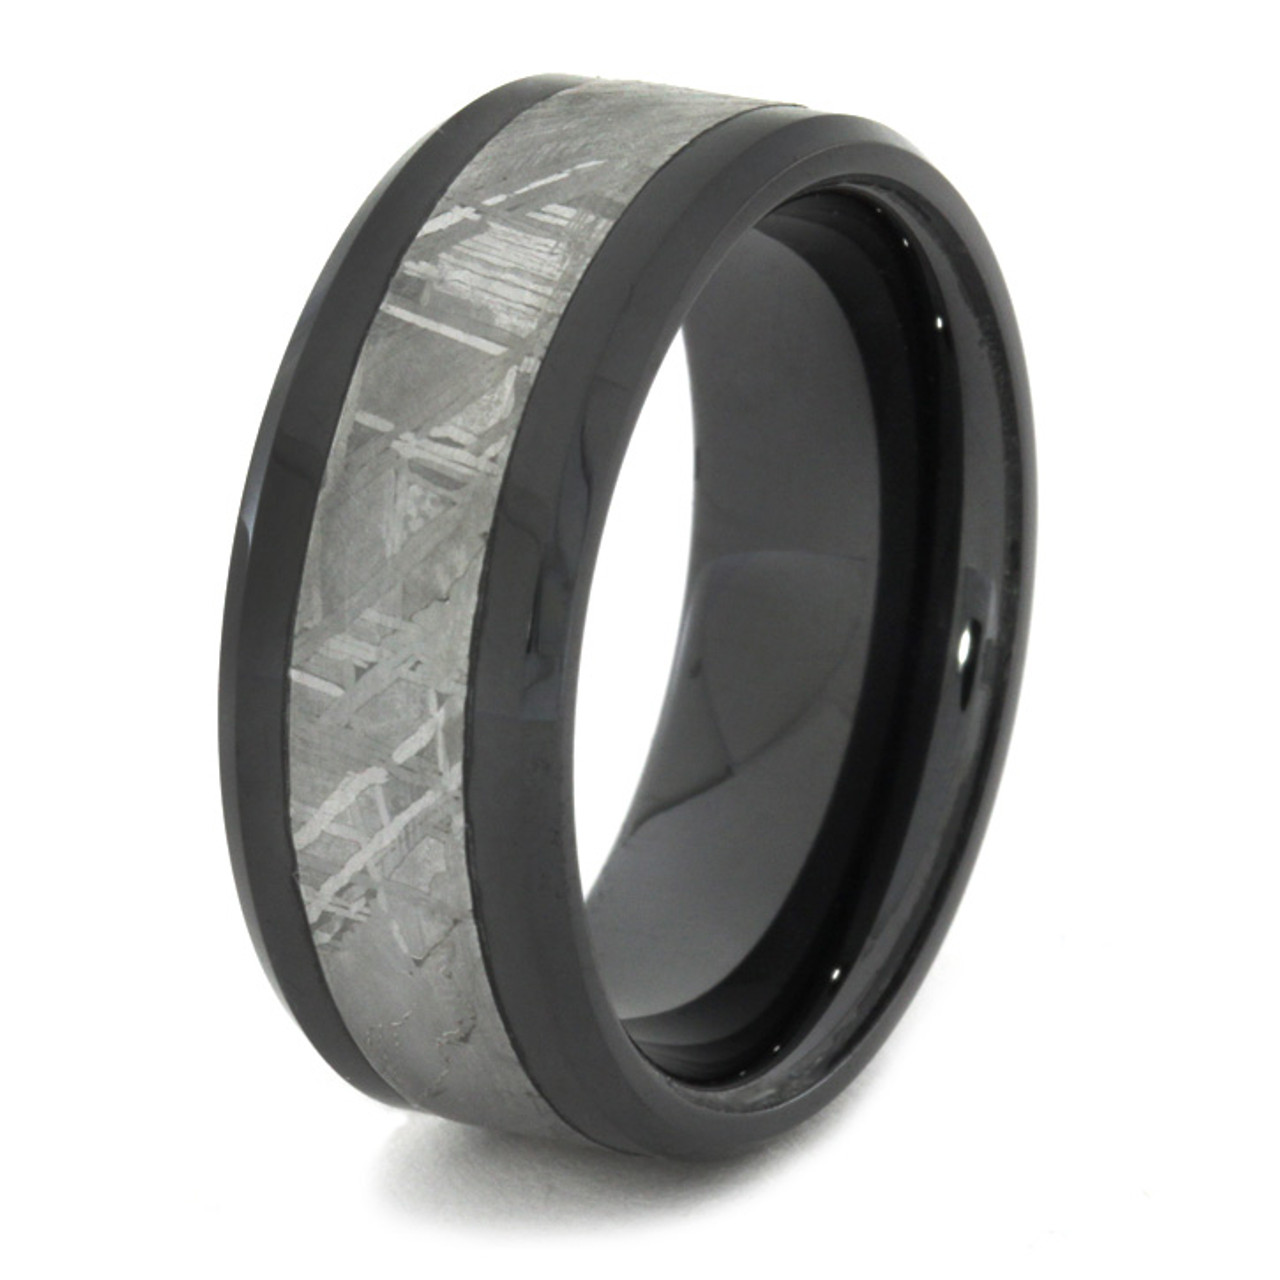 8mm tungsten carbide with antler inlay c121m at mwb 8 mm unique mens wedding bands with black ceramicmeteorite bc166m junglespirit Choice Image